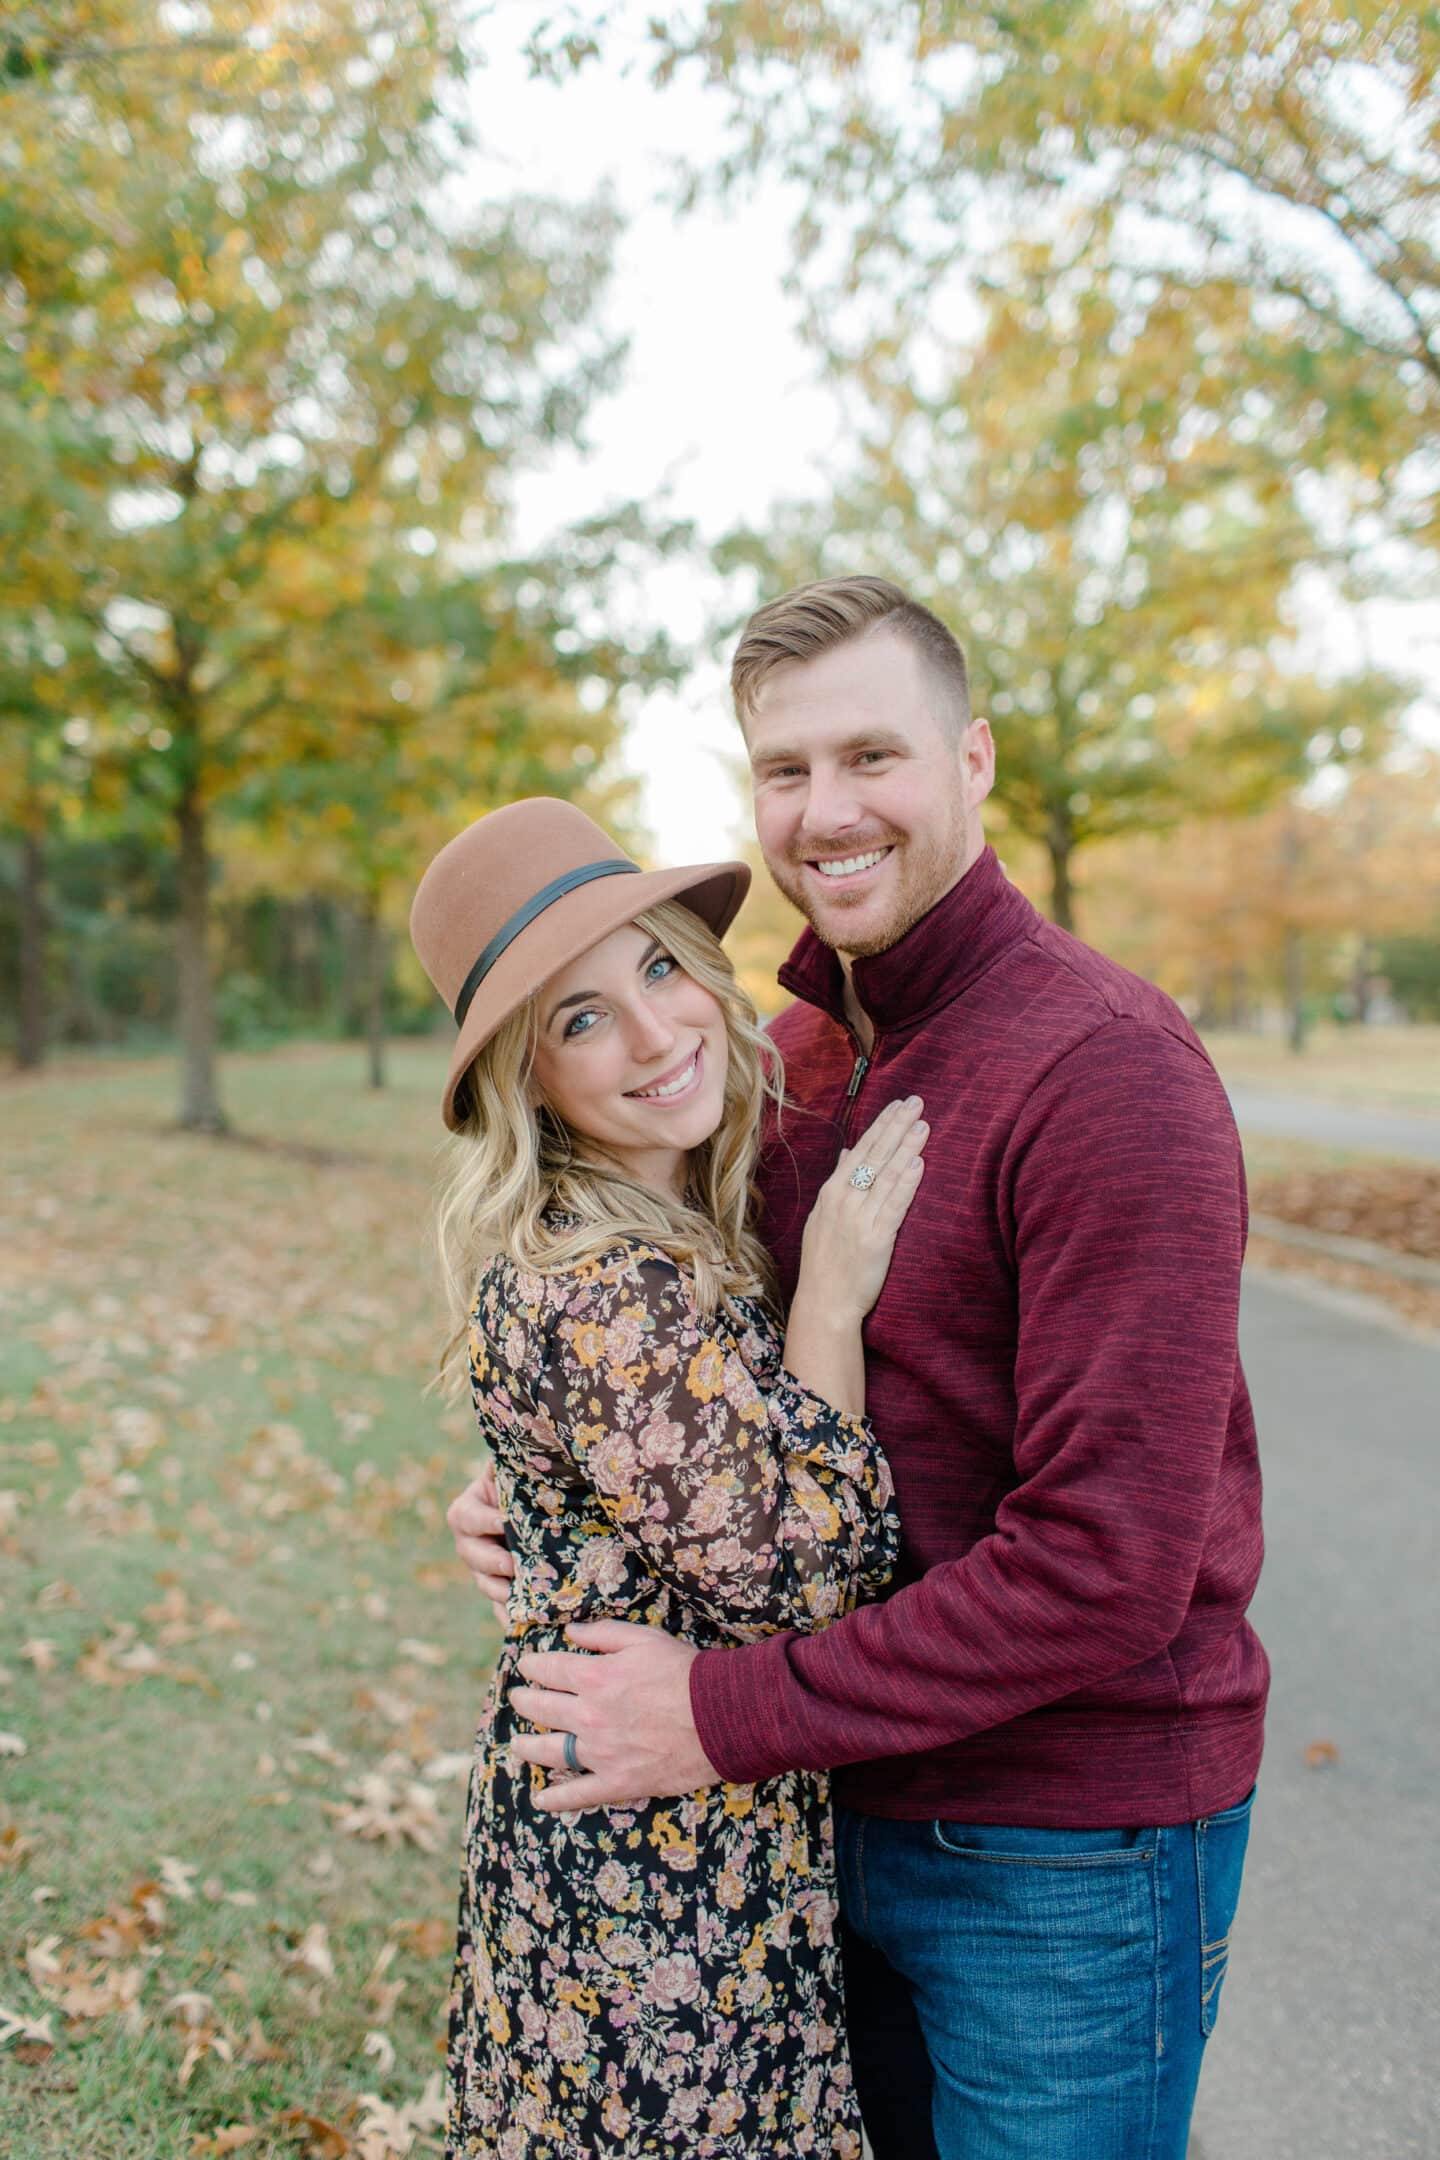 The Value of a Weekly Marriage Check-In